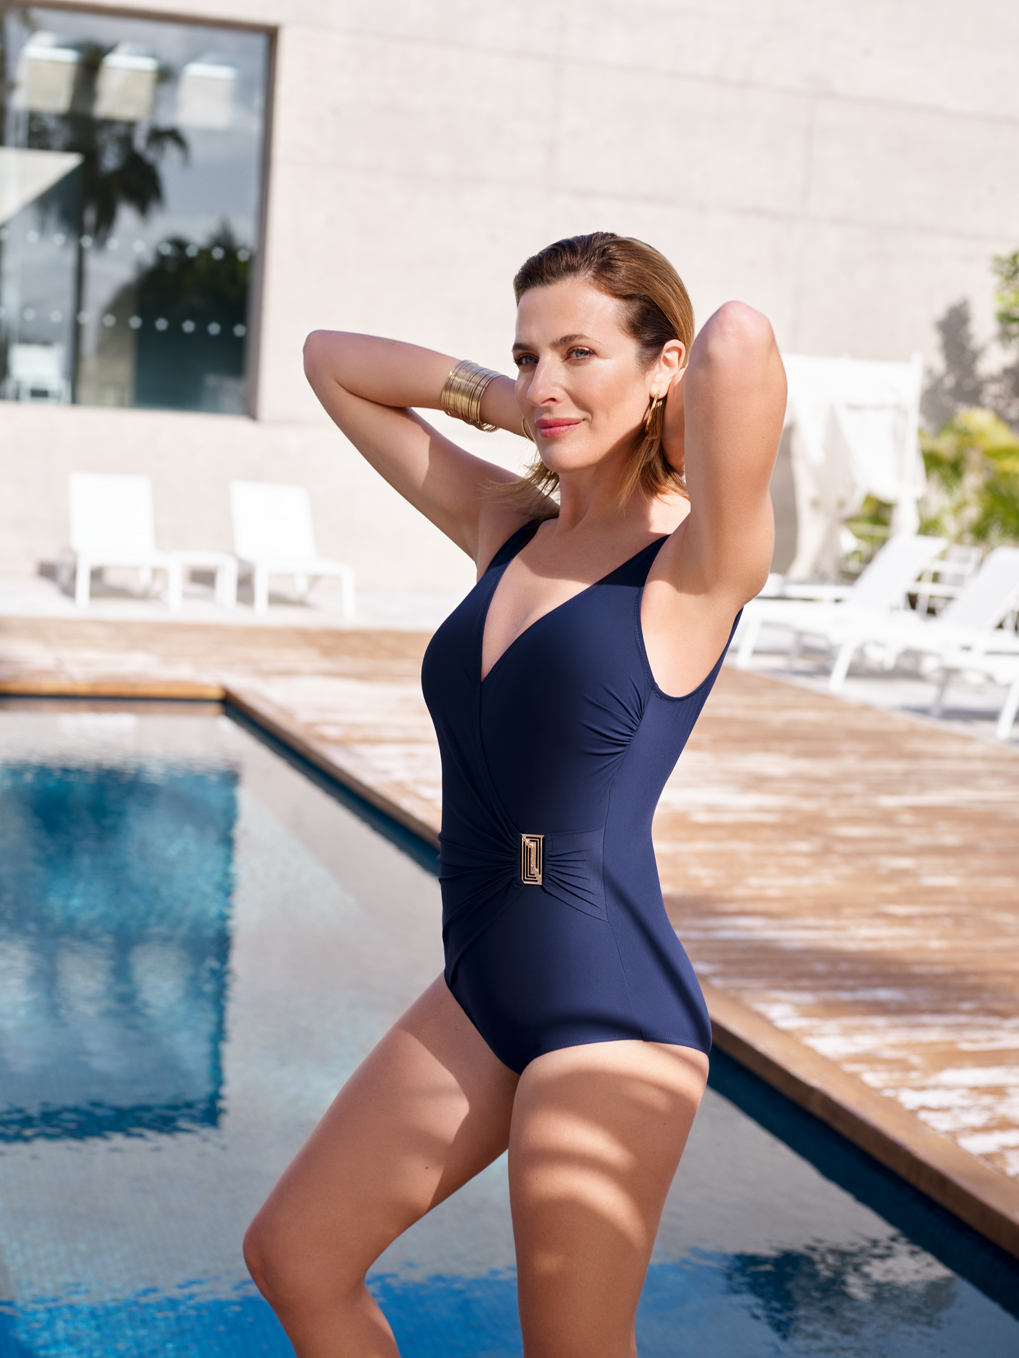 bac1362abbd Felina One-piece swimsuit with inner support 5206202 CLASSIC SHAPE